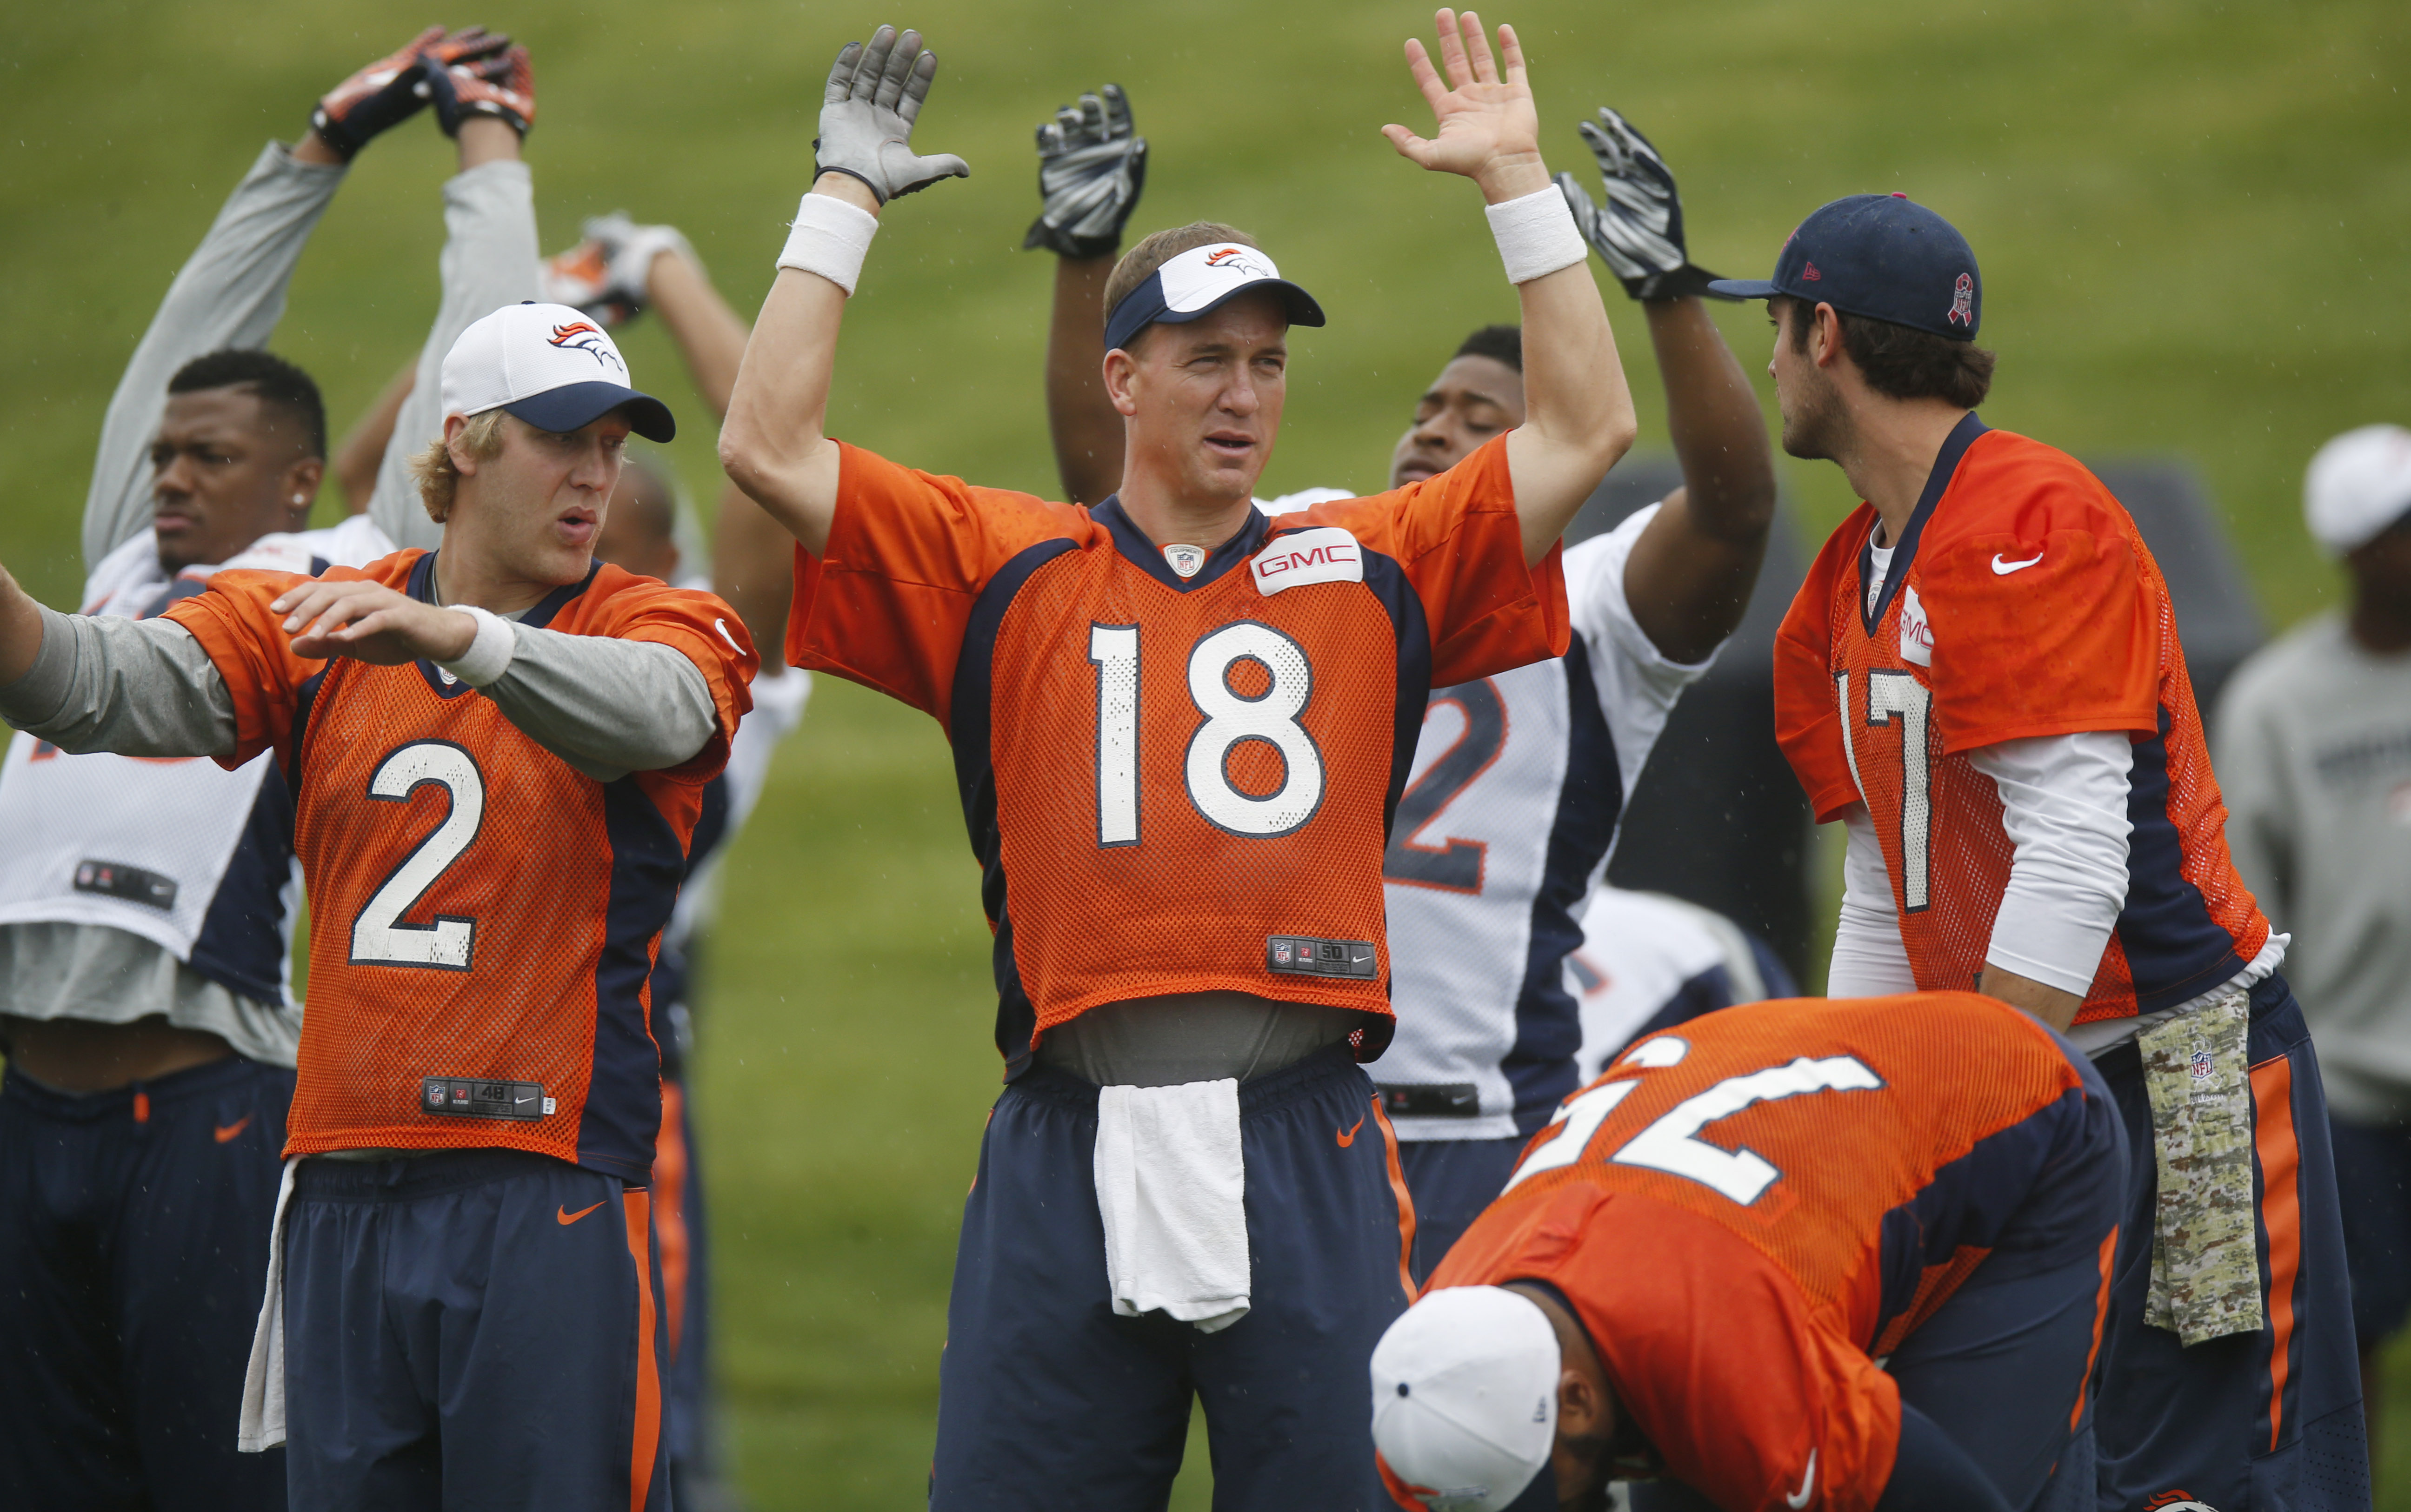 Denver Broncos quarterbacks Peyton Manning, center, Brock Osweiler, right, and Zac Dysert chat during NFL football minicamp at the team's headquarters, Wednesday, June 10, 2015, in Englewood, Colo. (AP Photo/David Zalubowski)